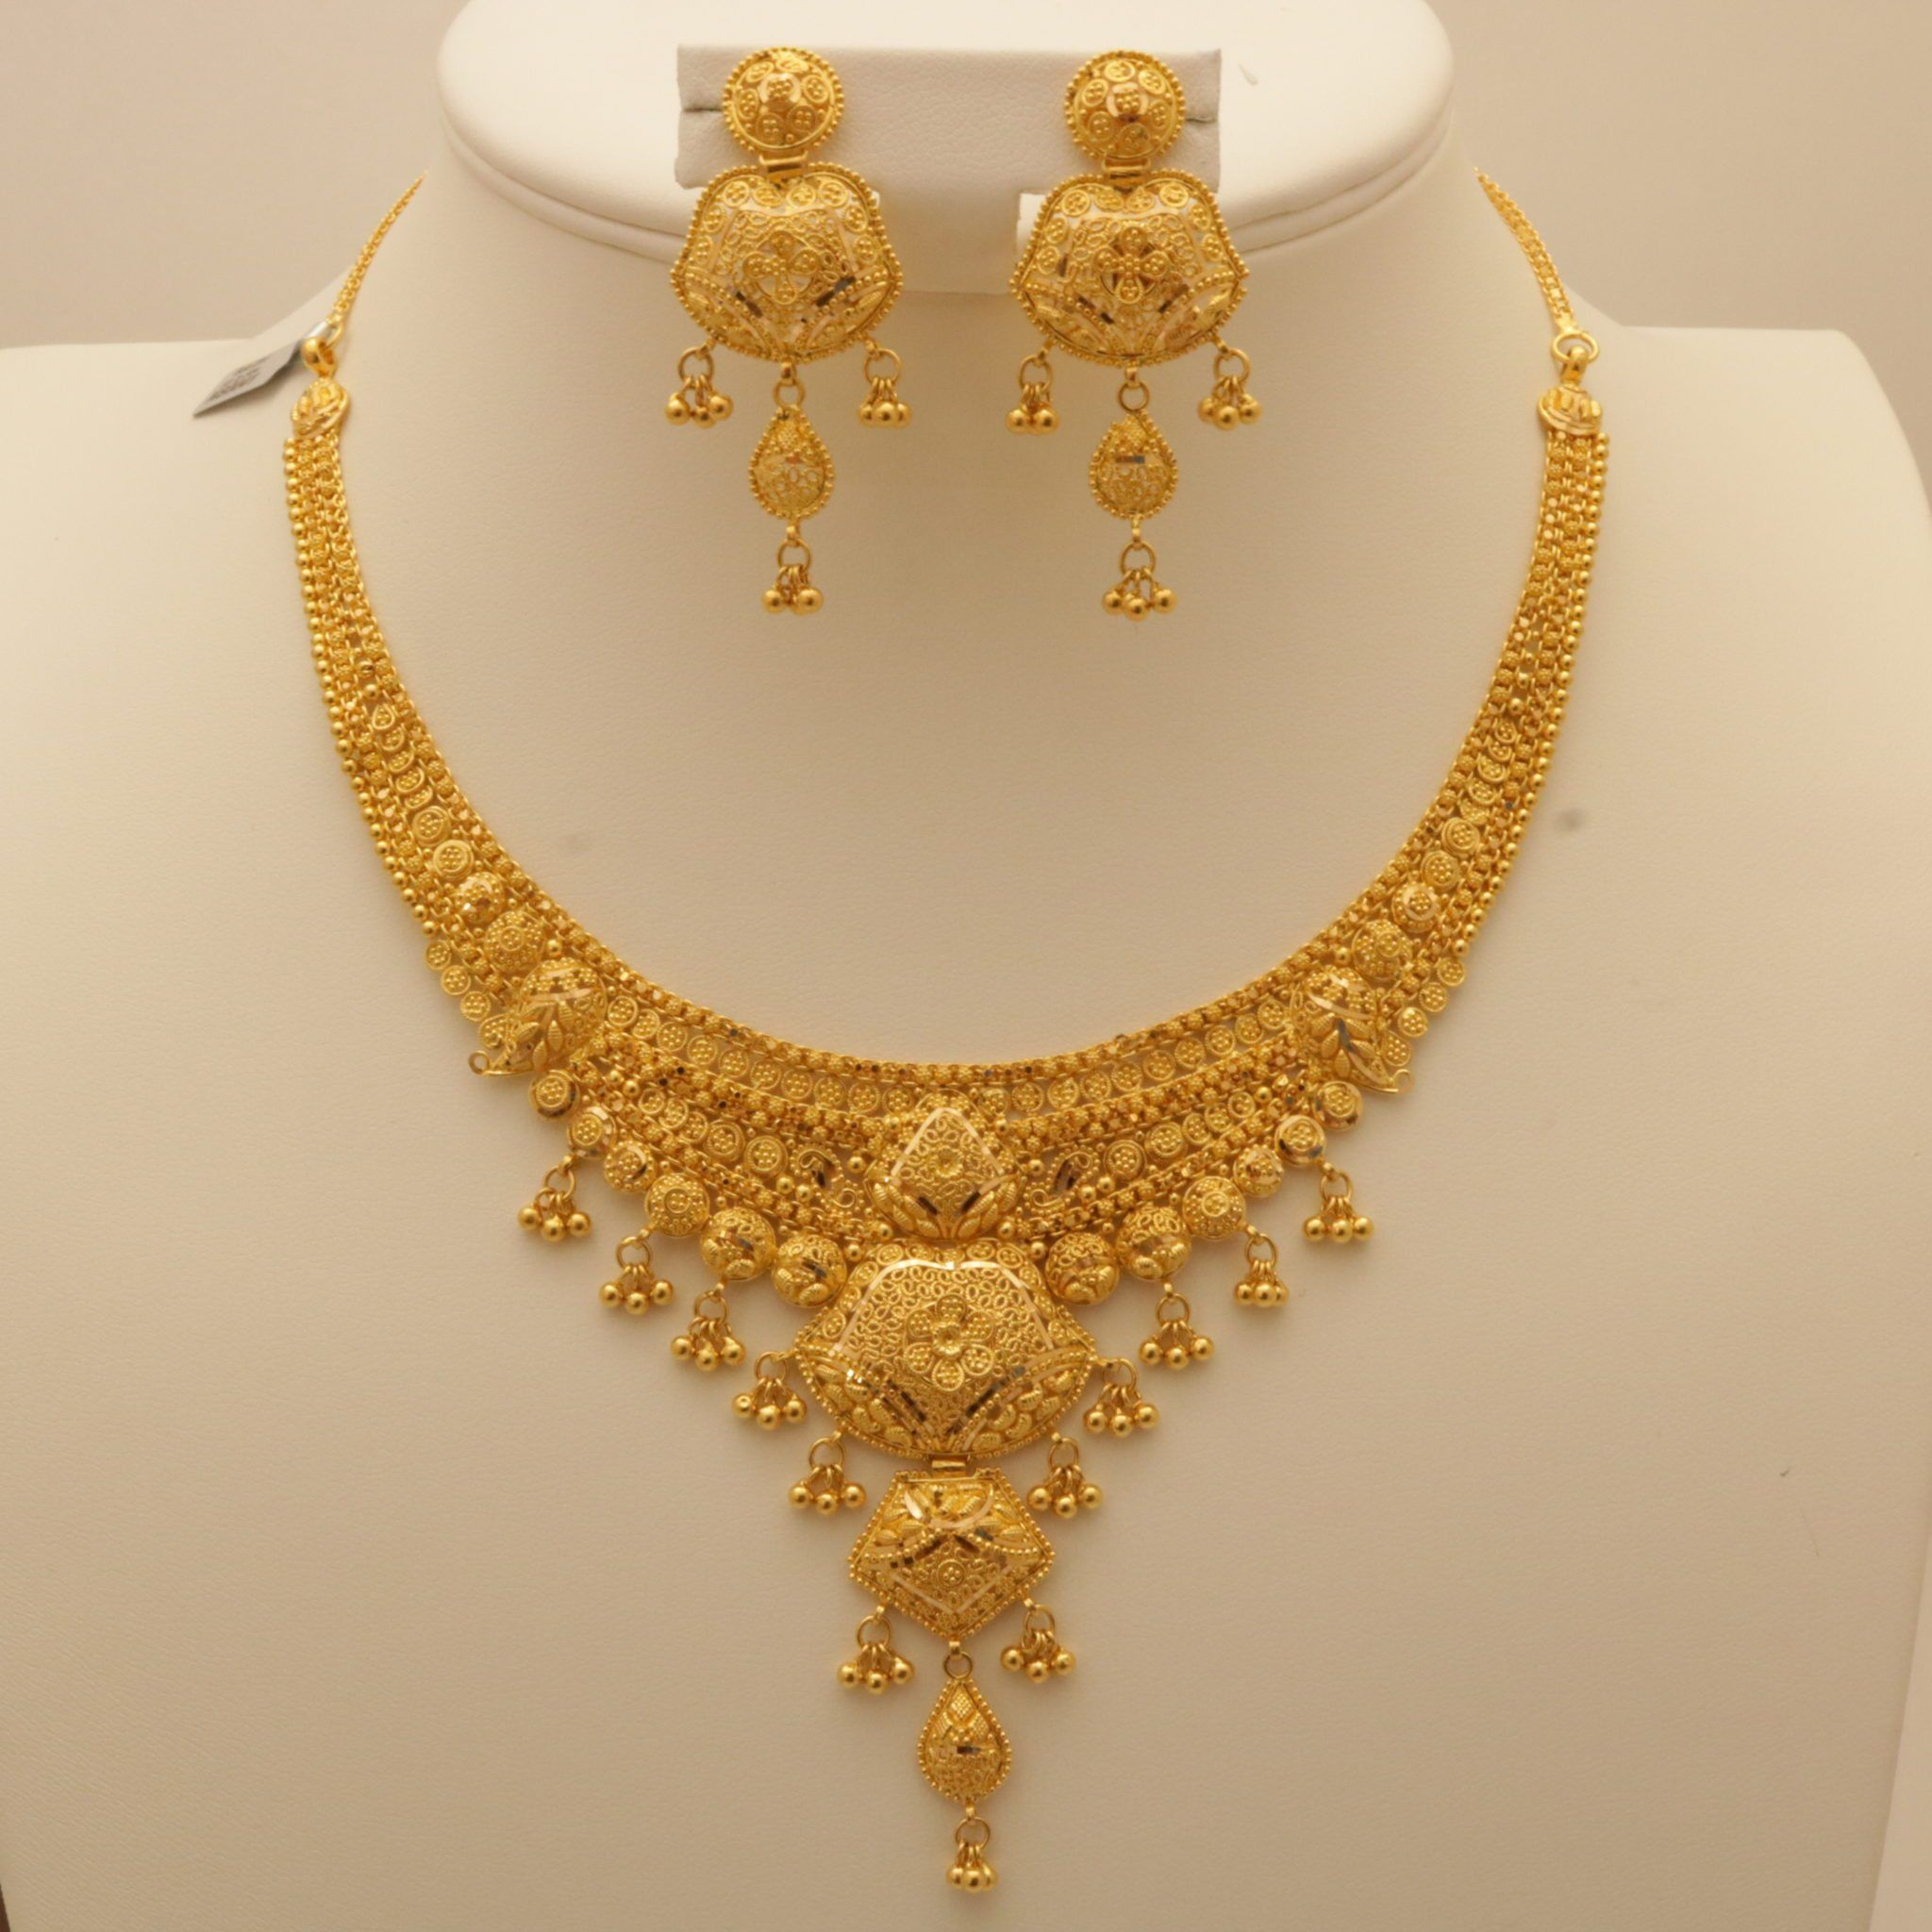 Indian Gold Jewellery Necklace Sets Google Search: Indian Gold Jewellery Necklace Sets - Google Search